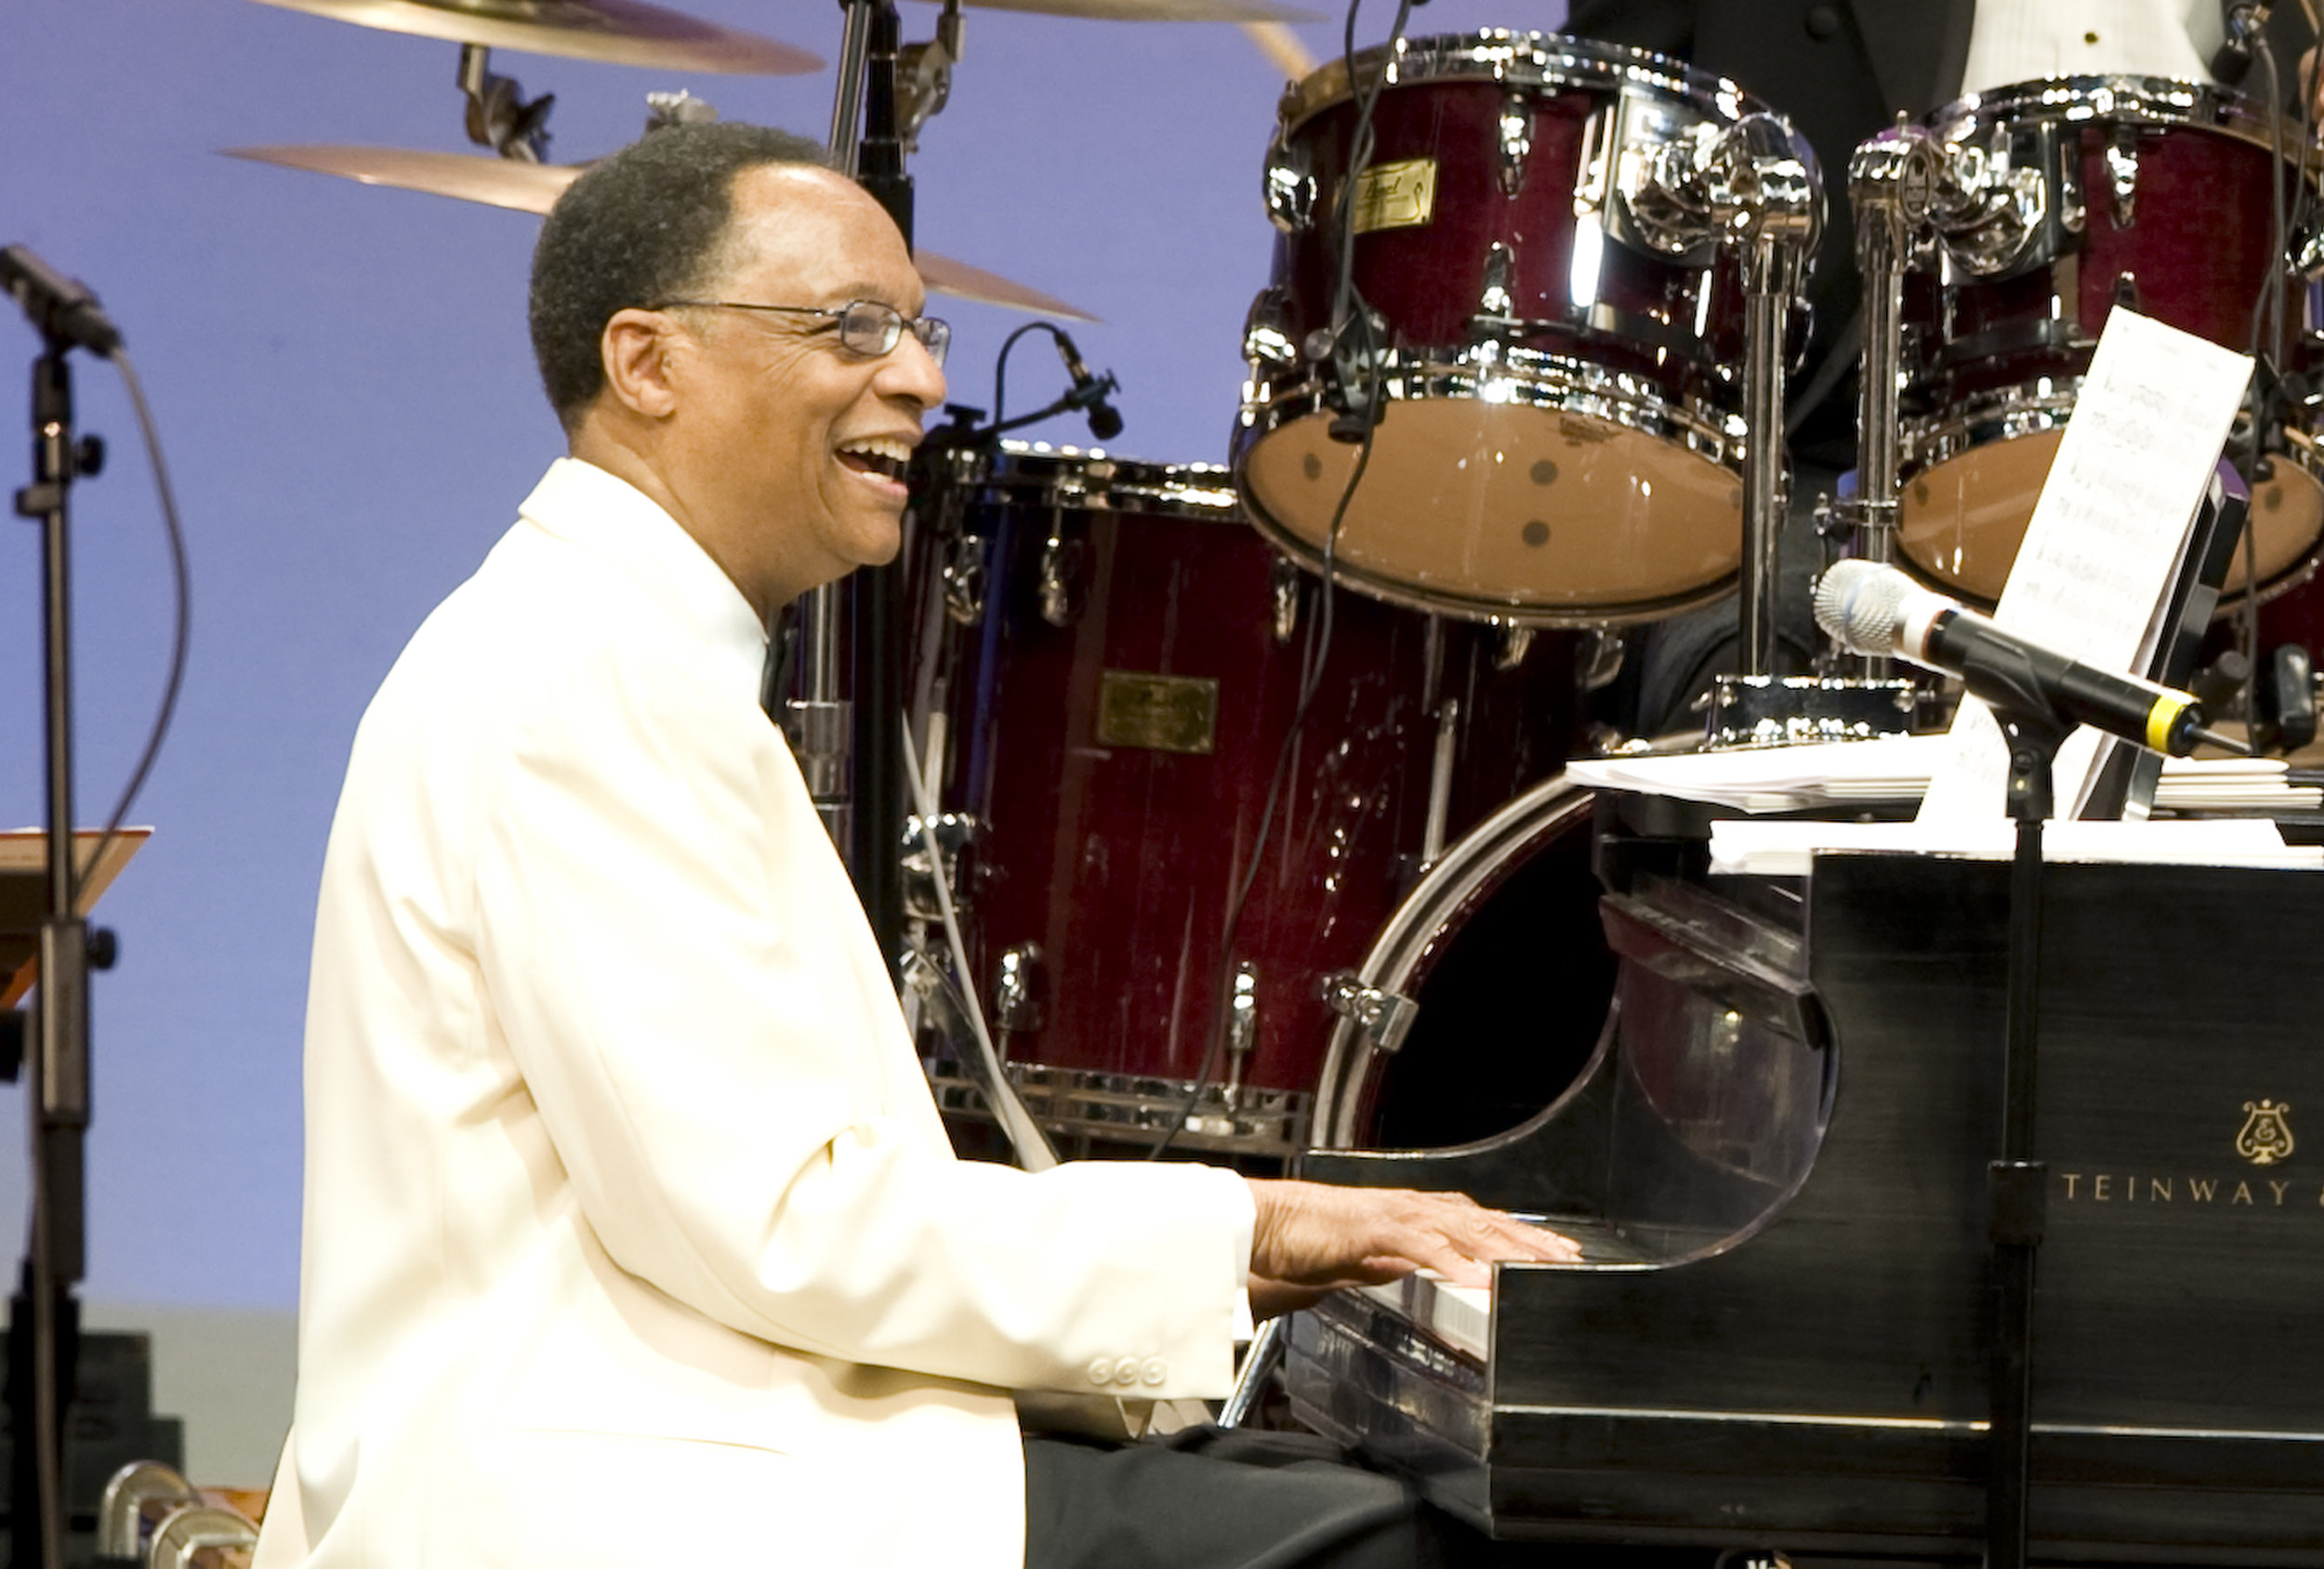 - Ramsey Lewis has been an iconic leader in the contemporary jazz movement for over 50 years with an unforgettable sound and outgoing personality that has allowed him to crossover to the pop and R&B charts.